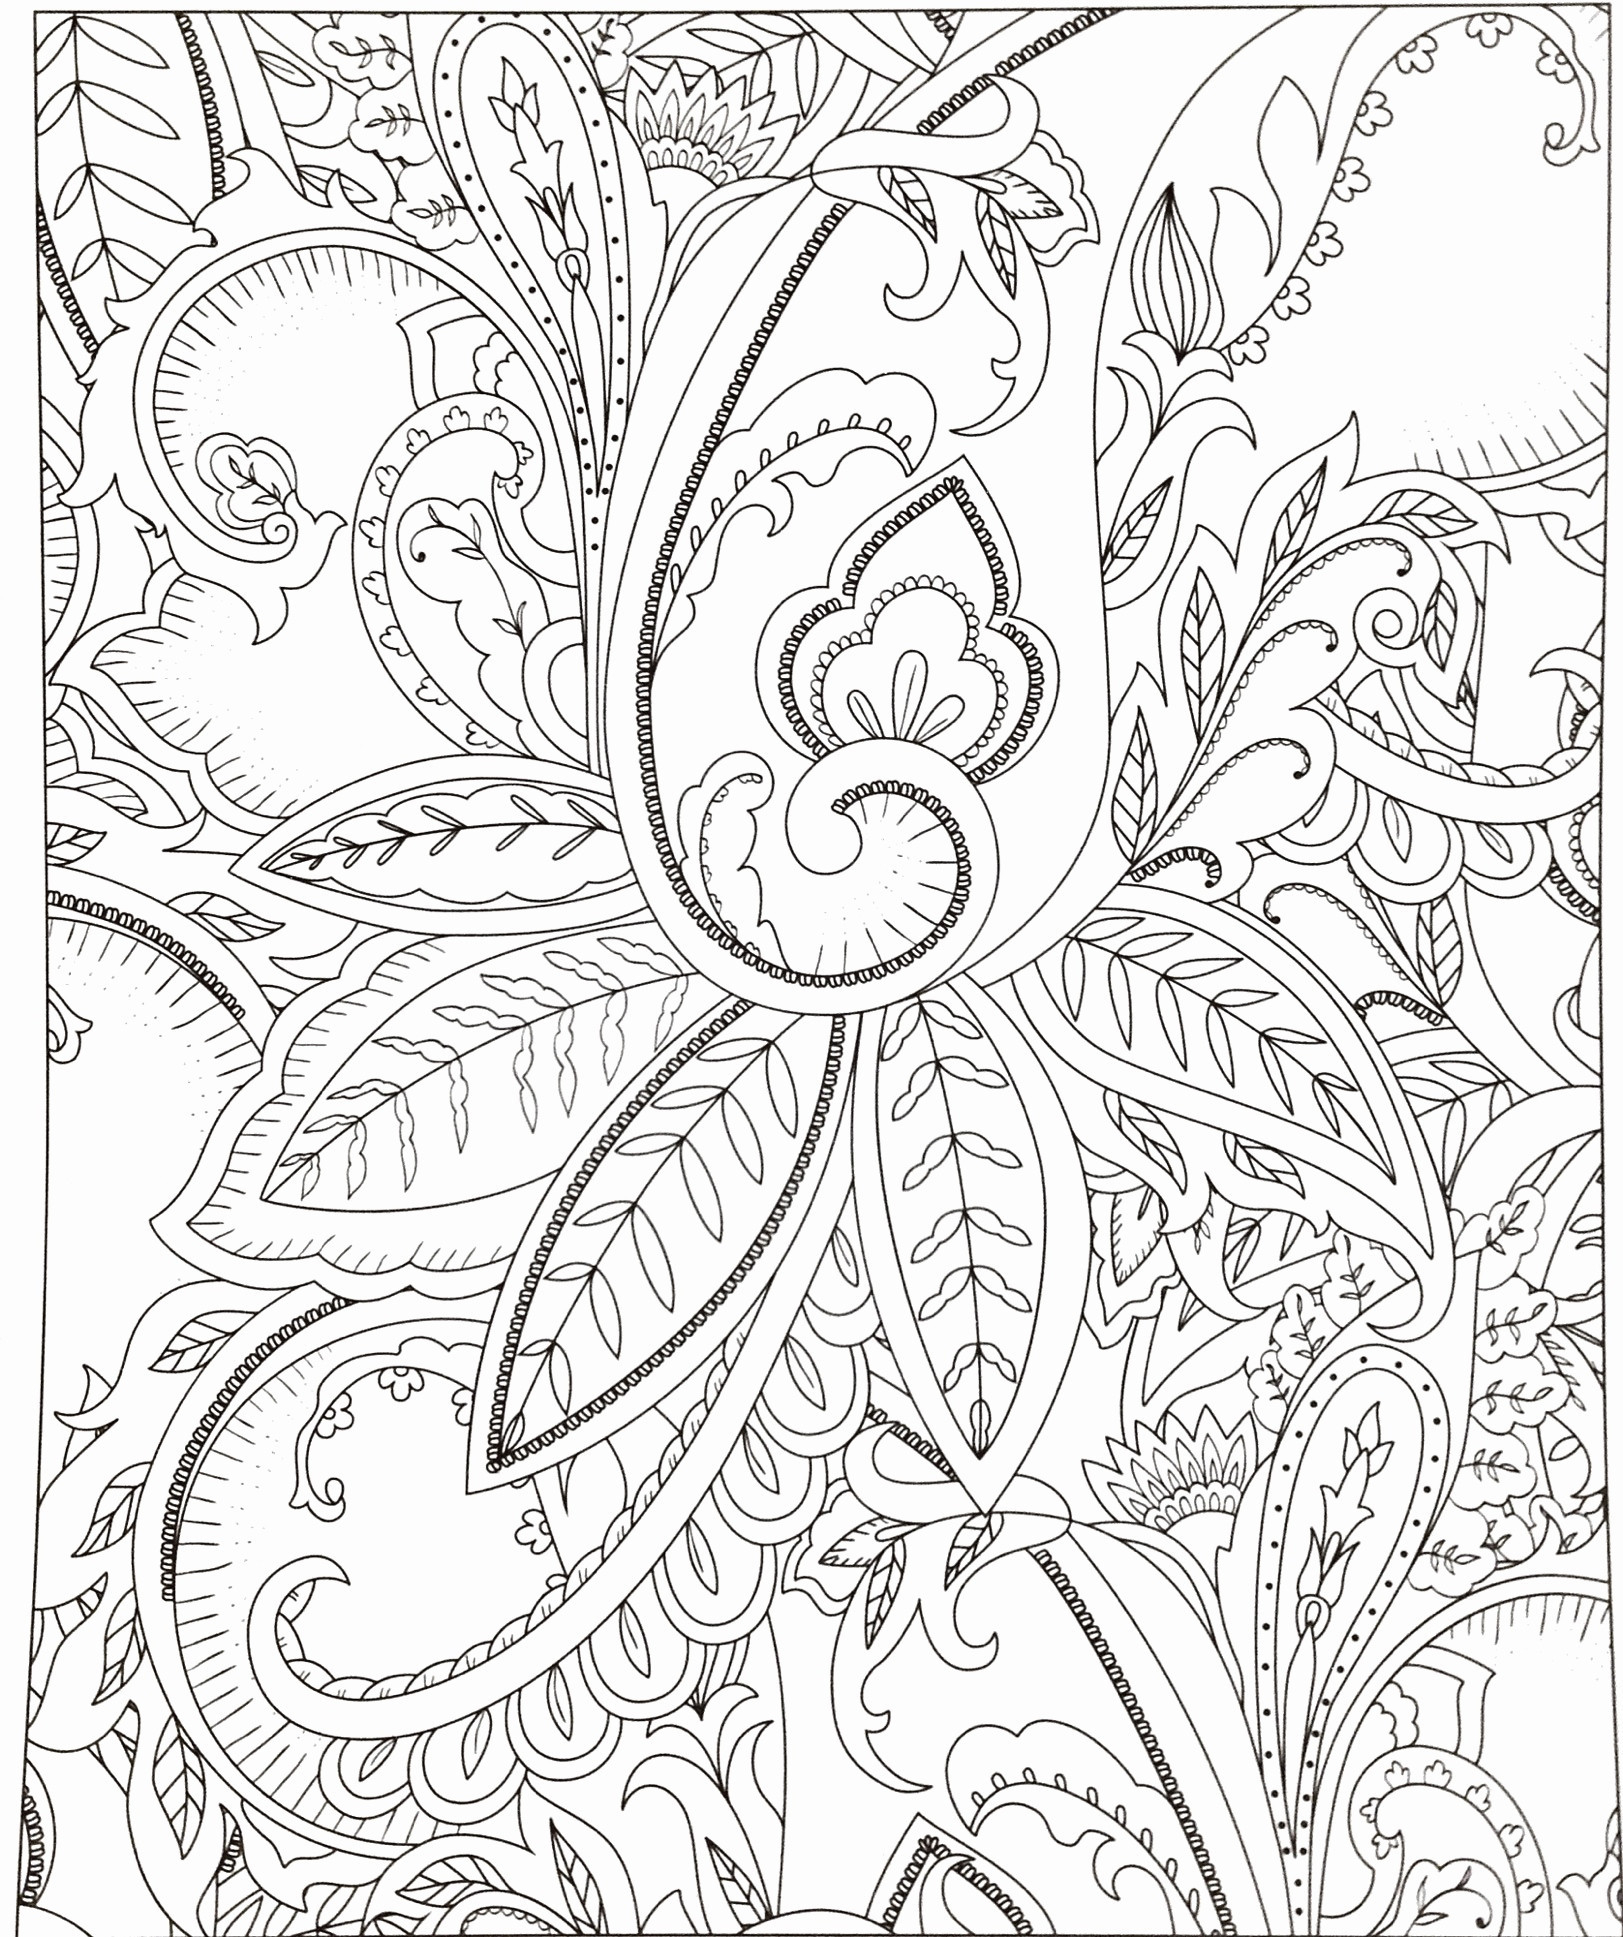 Coloring Pages In Color  Download 1i - Save it to your computer